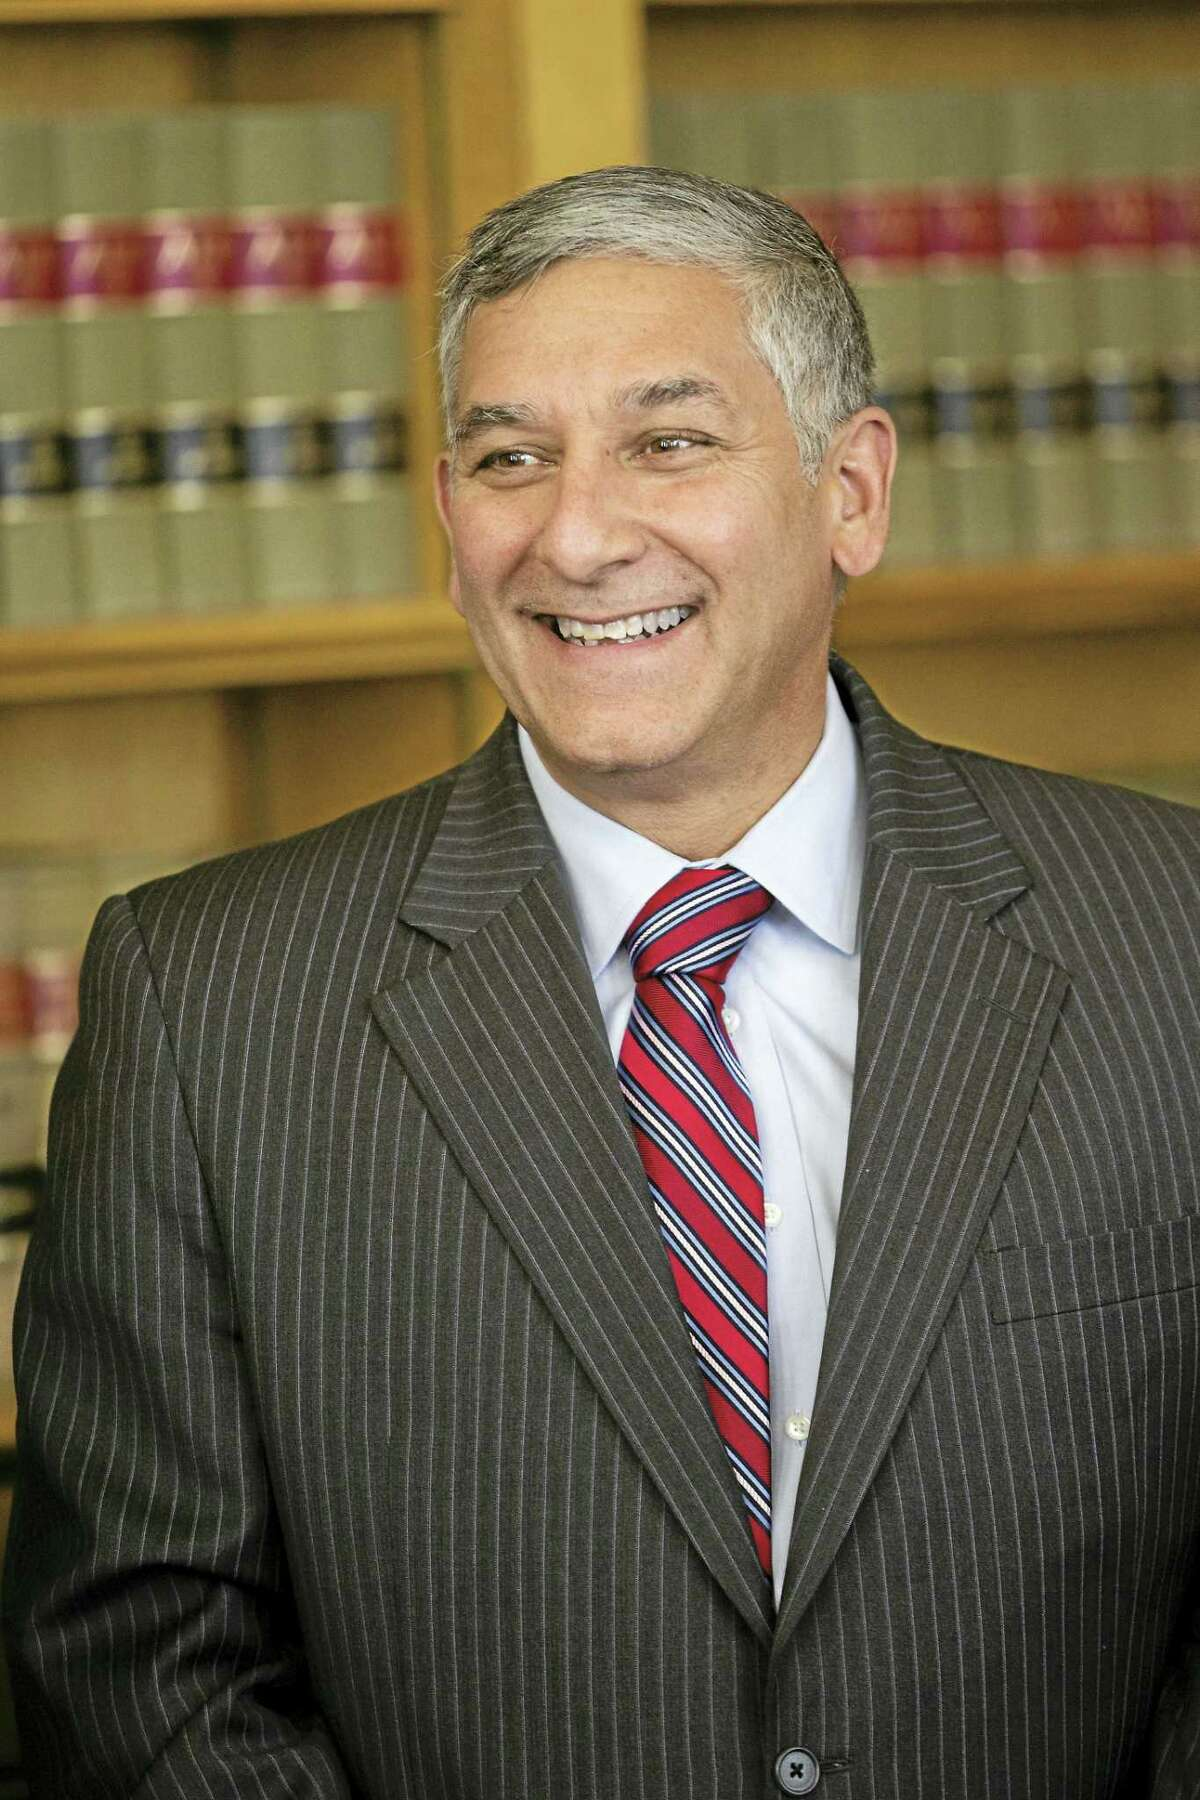 State Senate Minority Leader Len Fasano, R-North Haven, represents the 34th Senatorial District including East Haven, Durham, North Haven and Wallingford.